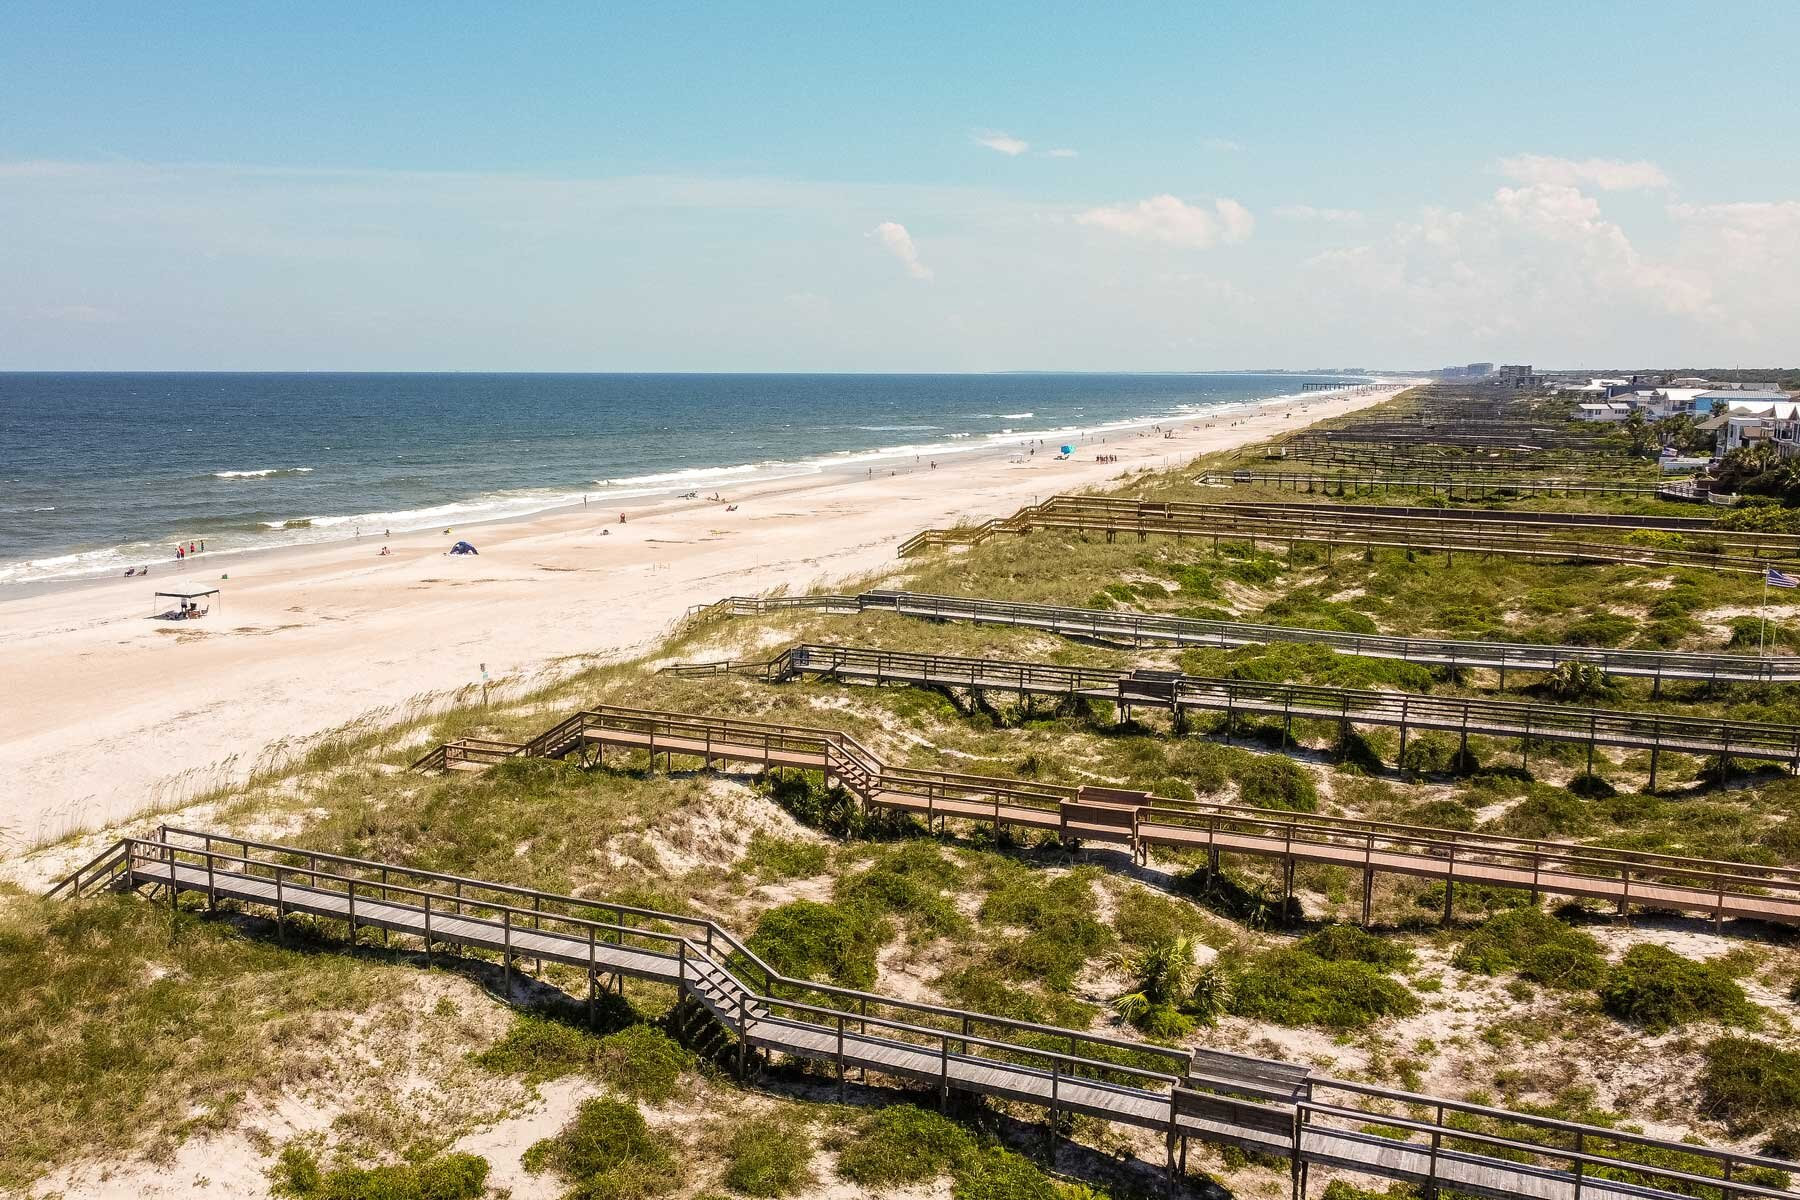 Aerial view looking southeast on Amelia Island, Florida.